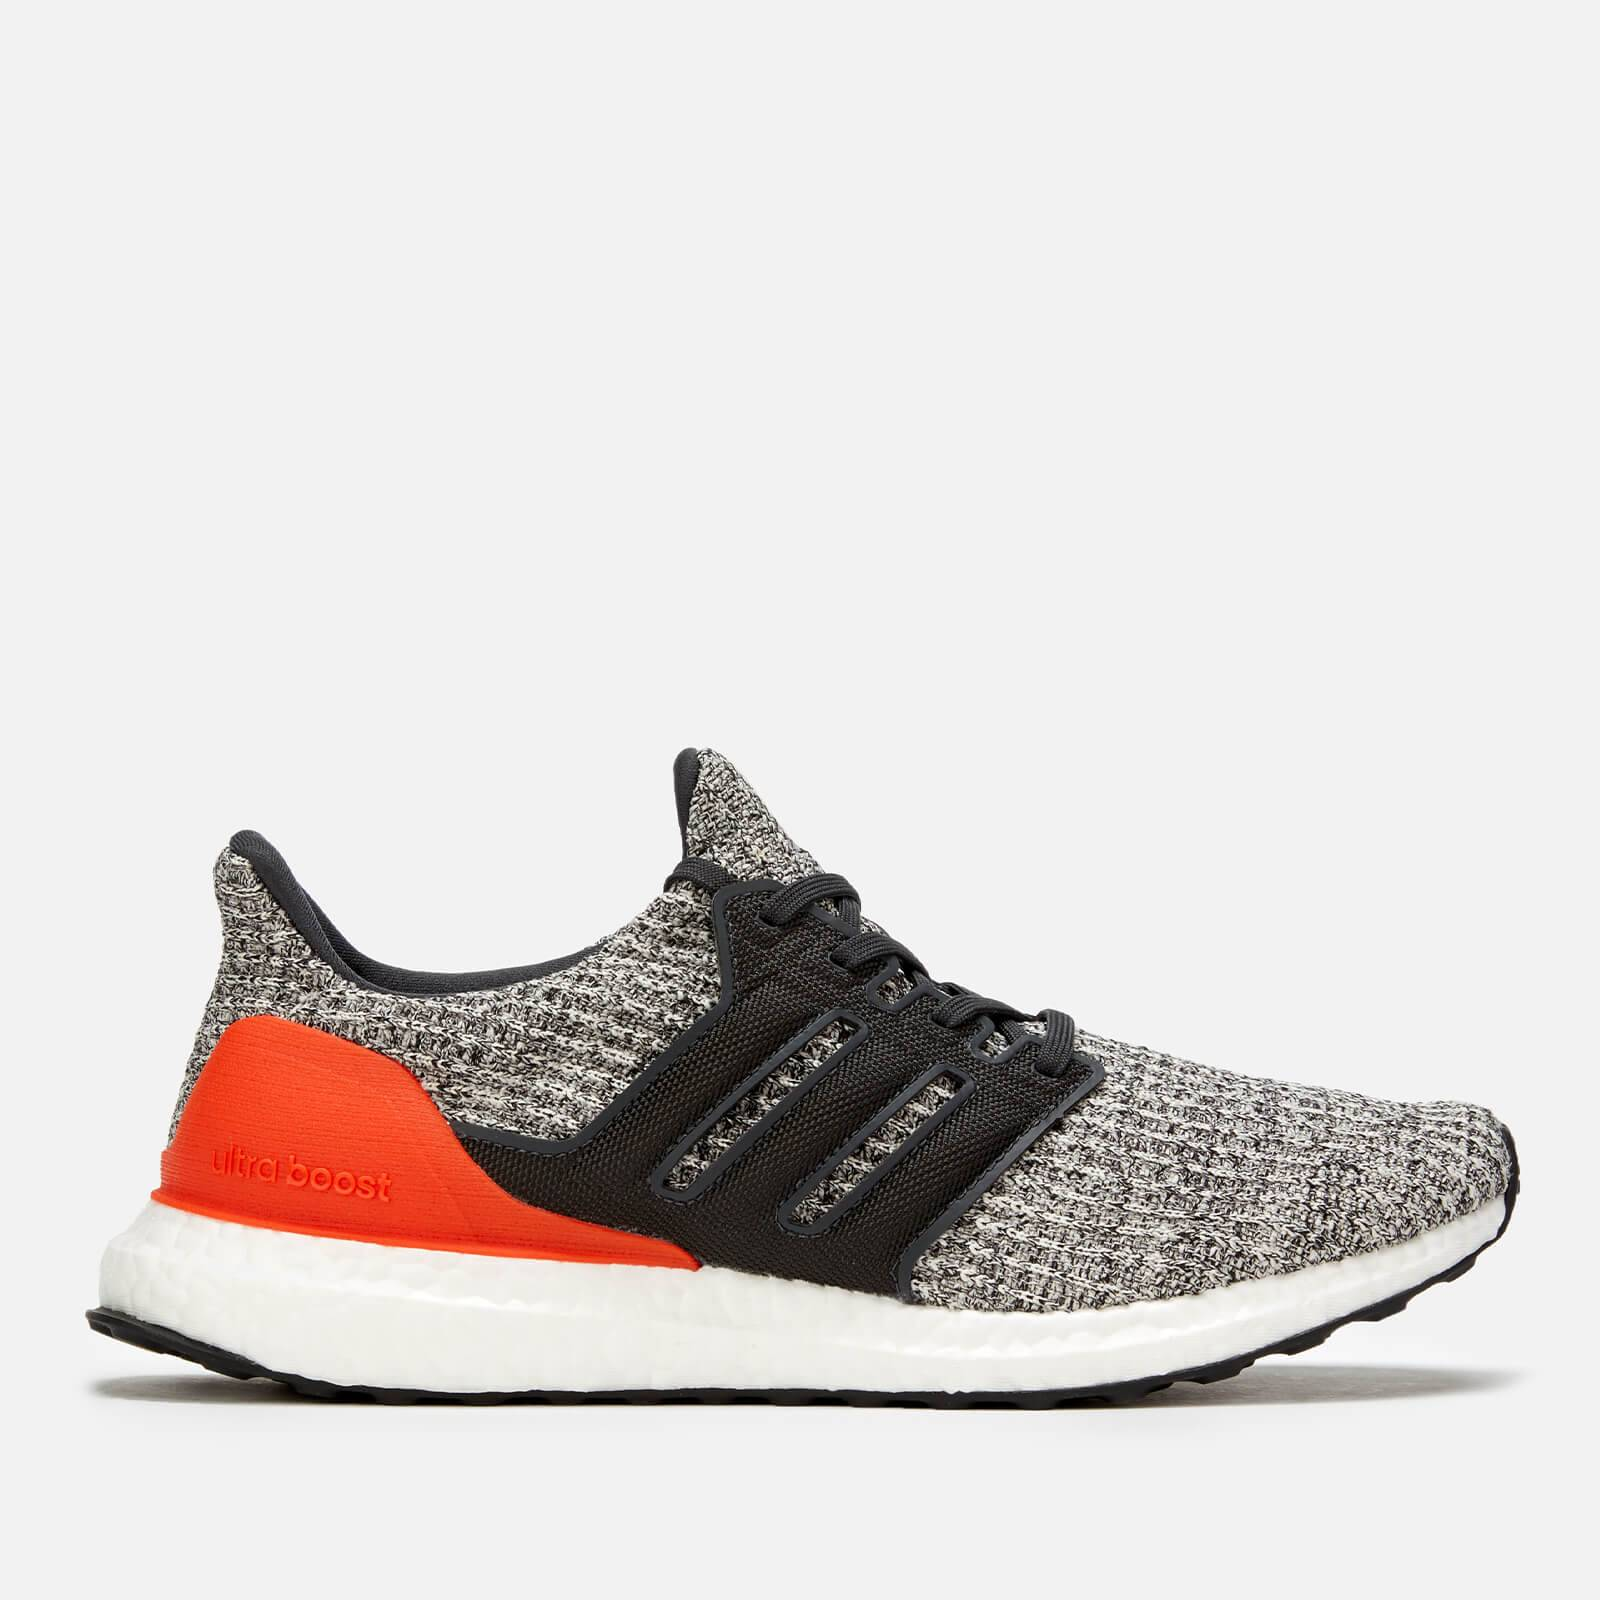 adidas Men's Ultraboost Trainers - Raw White/Carbon/Active Orange - UK 7 - Black